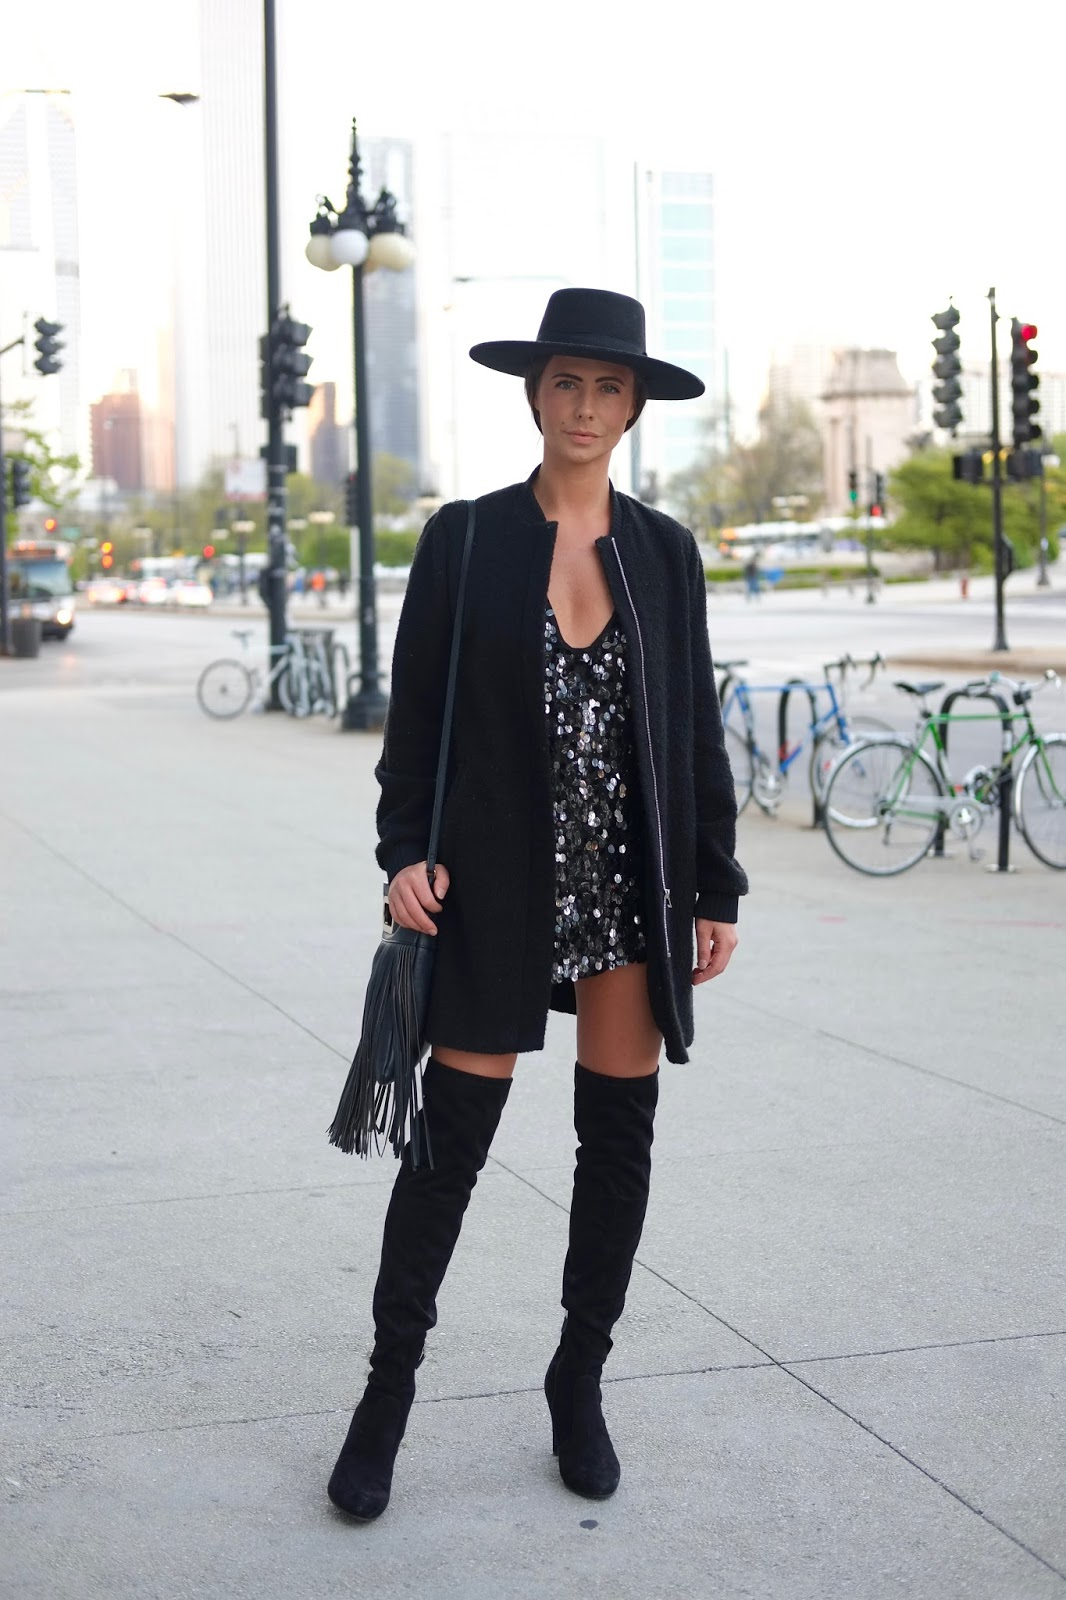 Jessica Chicago Looks A Chicago Street Style Fashion Blog